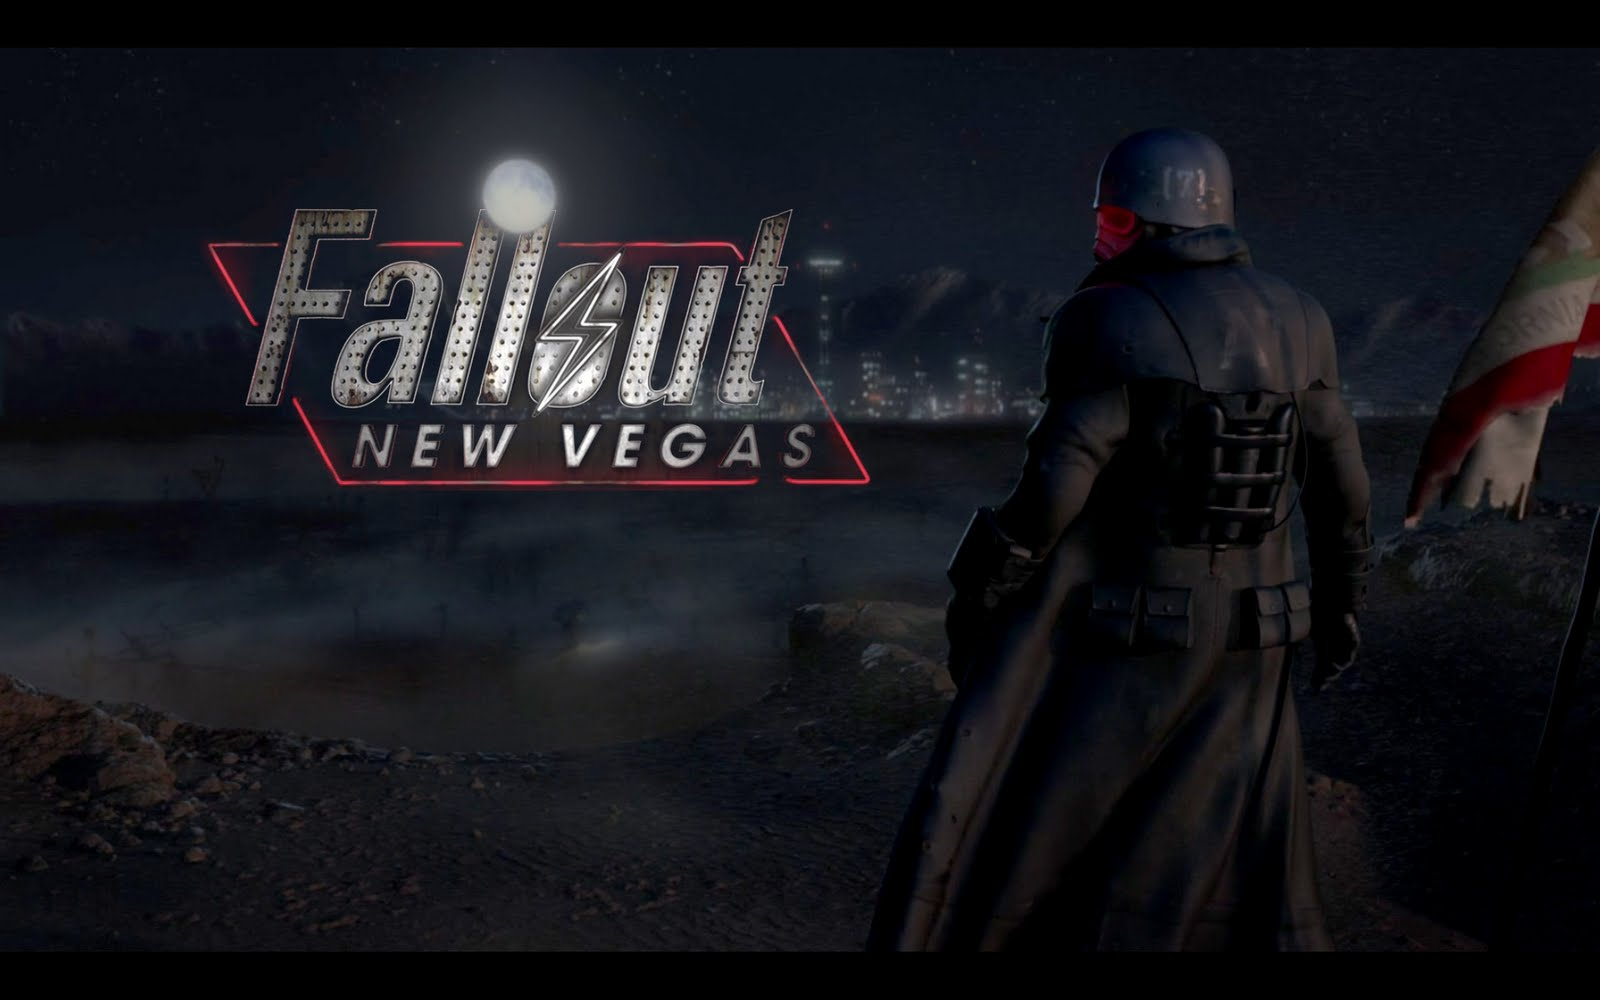 Fallout New Vegas HD Wallpaper DVD Cover Download Wallpapers in 1600x1000